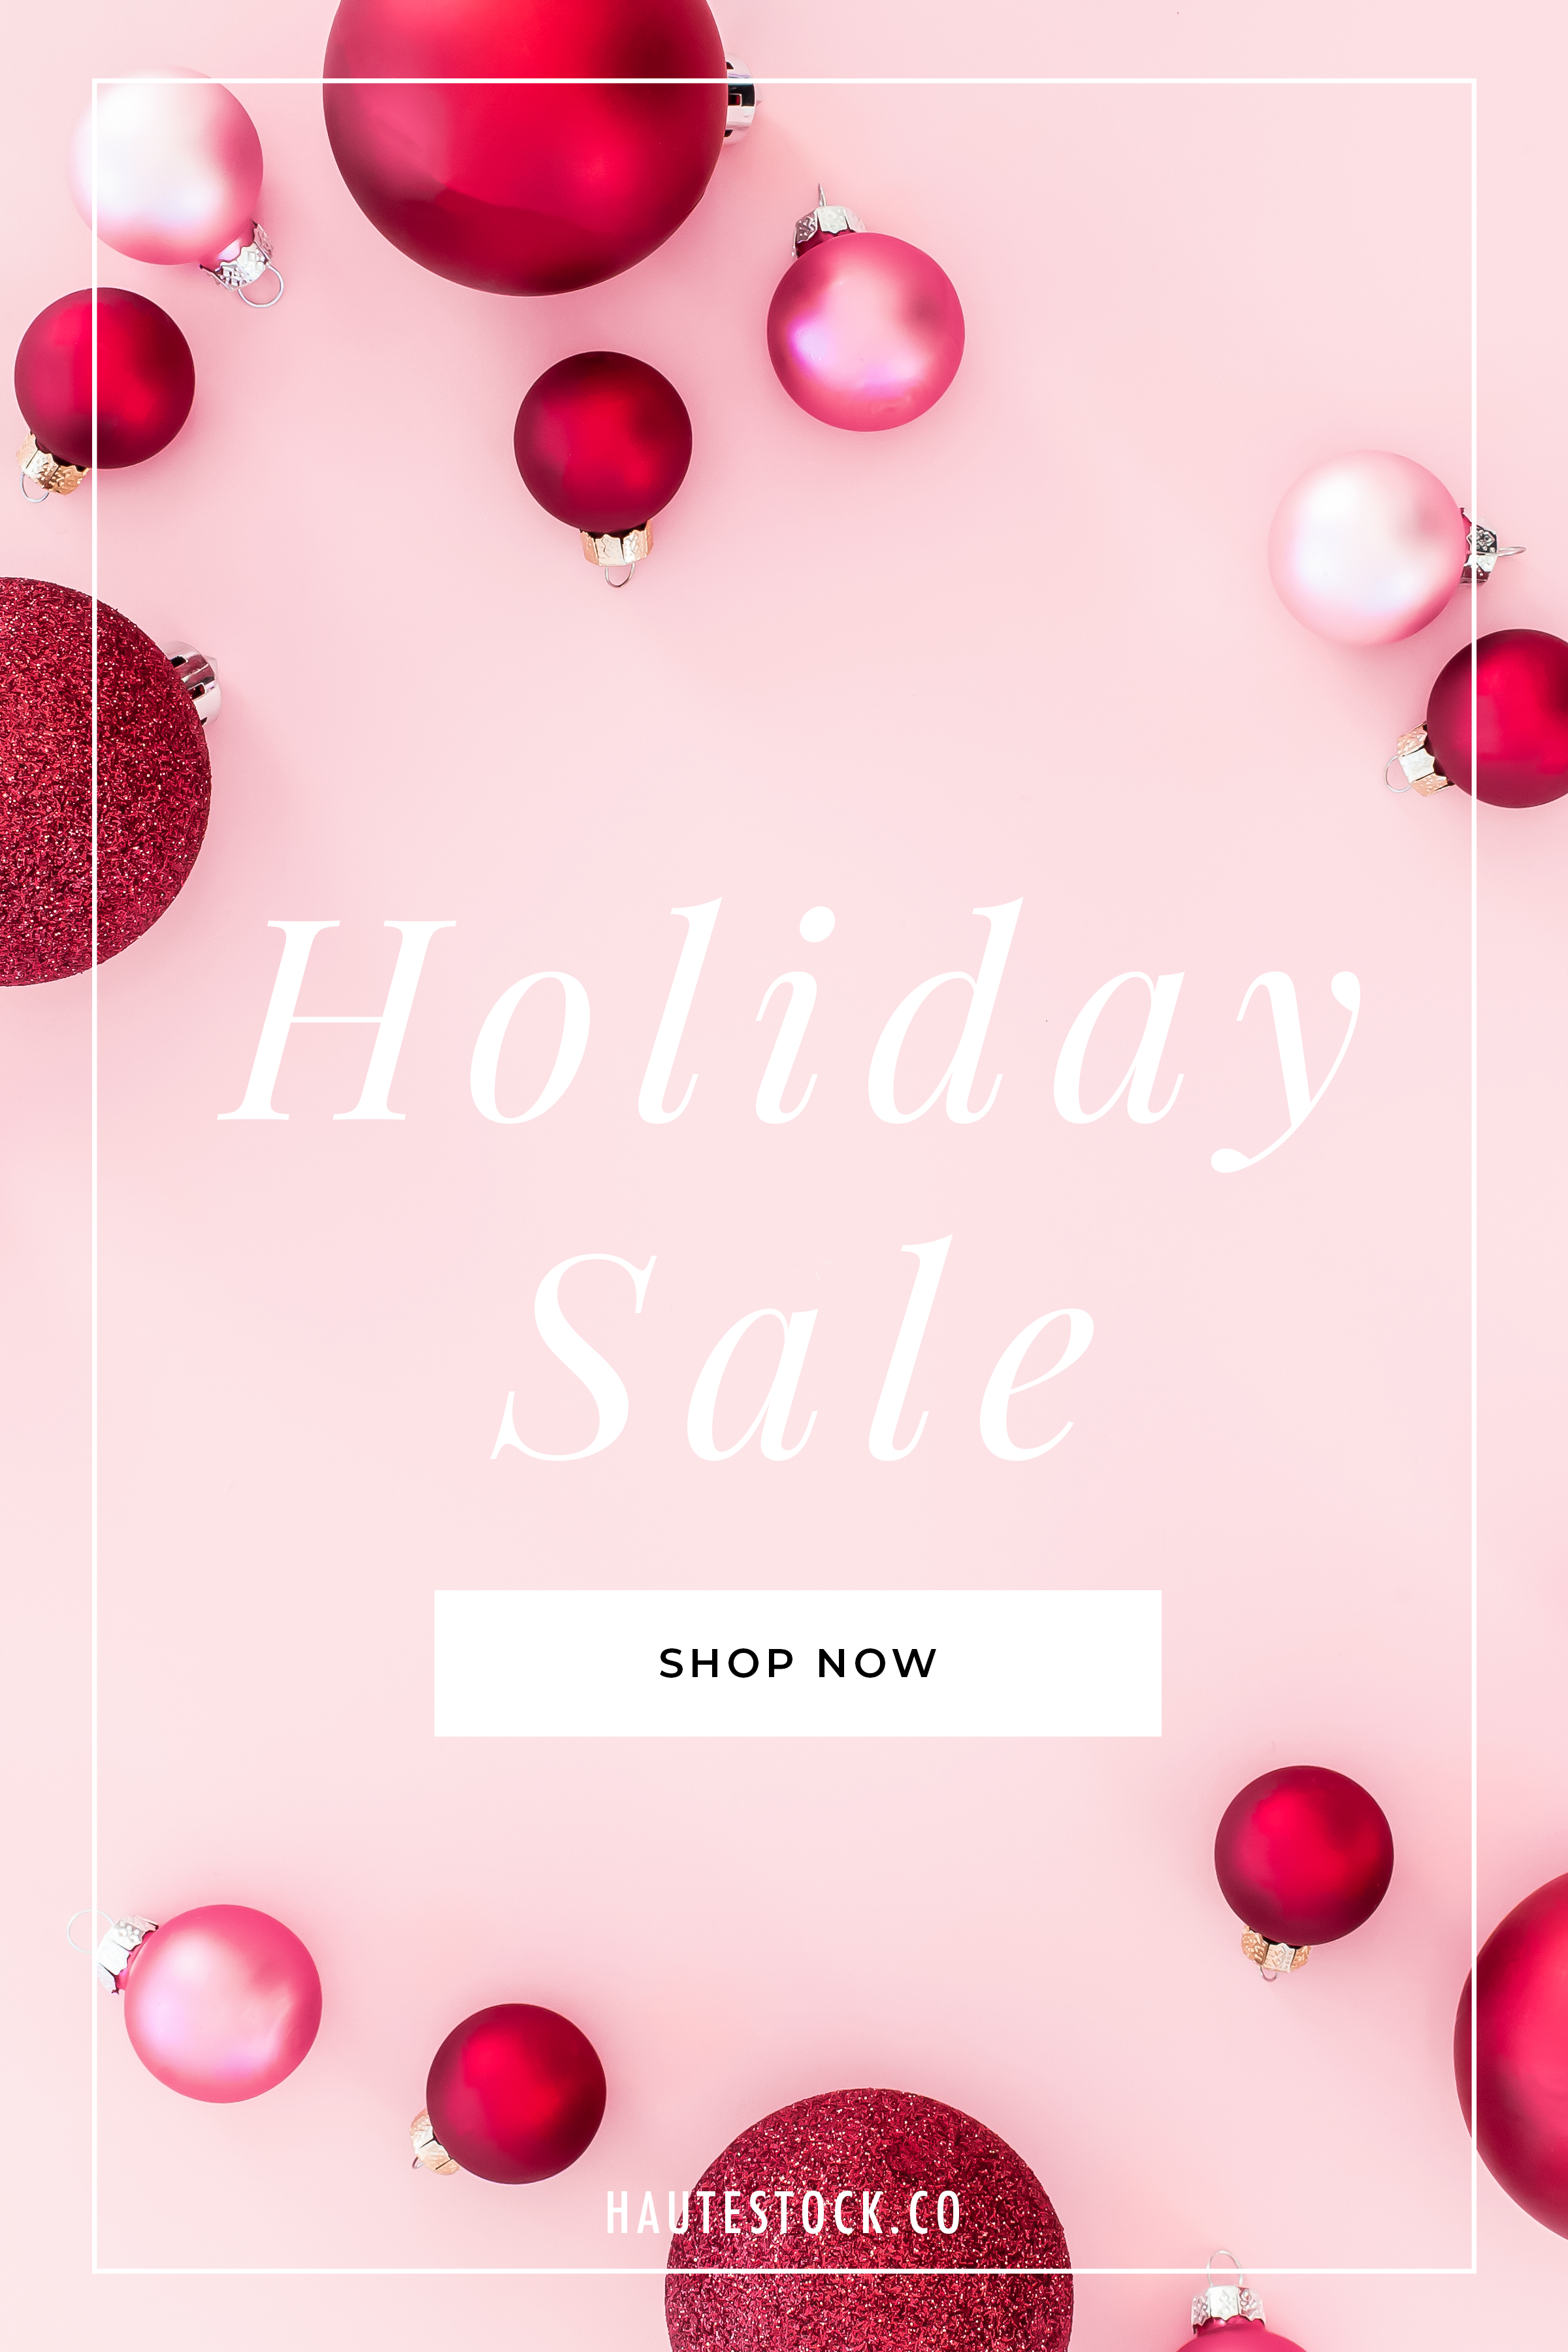 Haute Stock's Pink & Red Collection has your perfect bold images for the backdrop of your newsletter sales graphics!